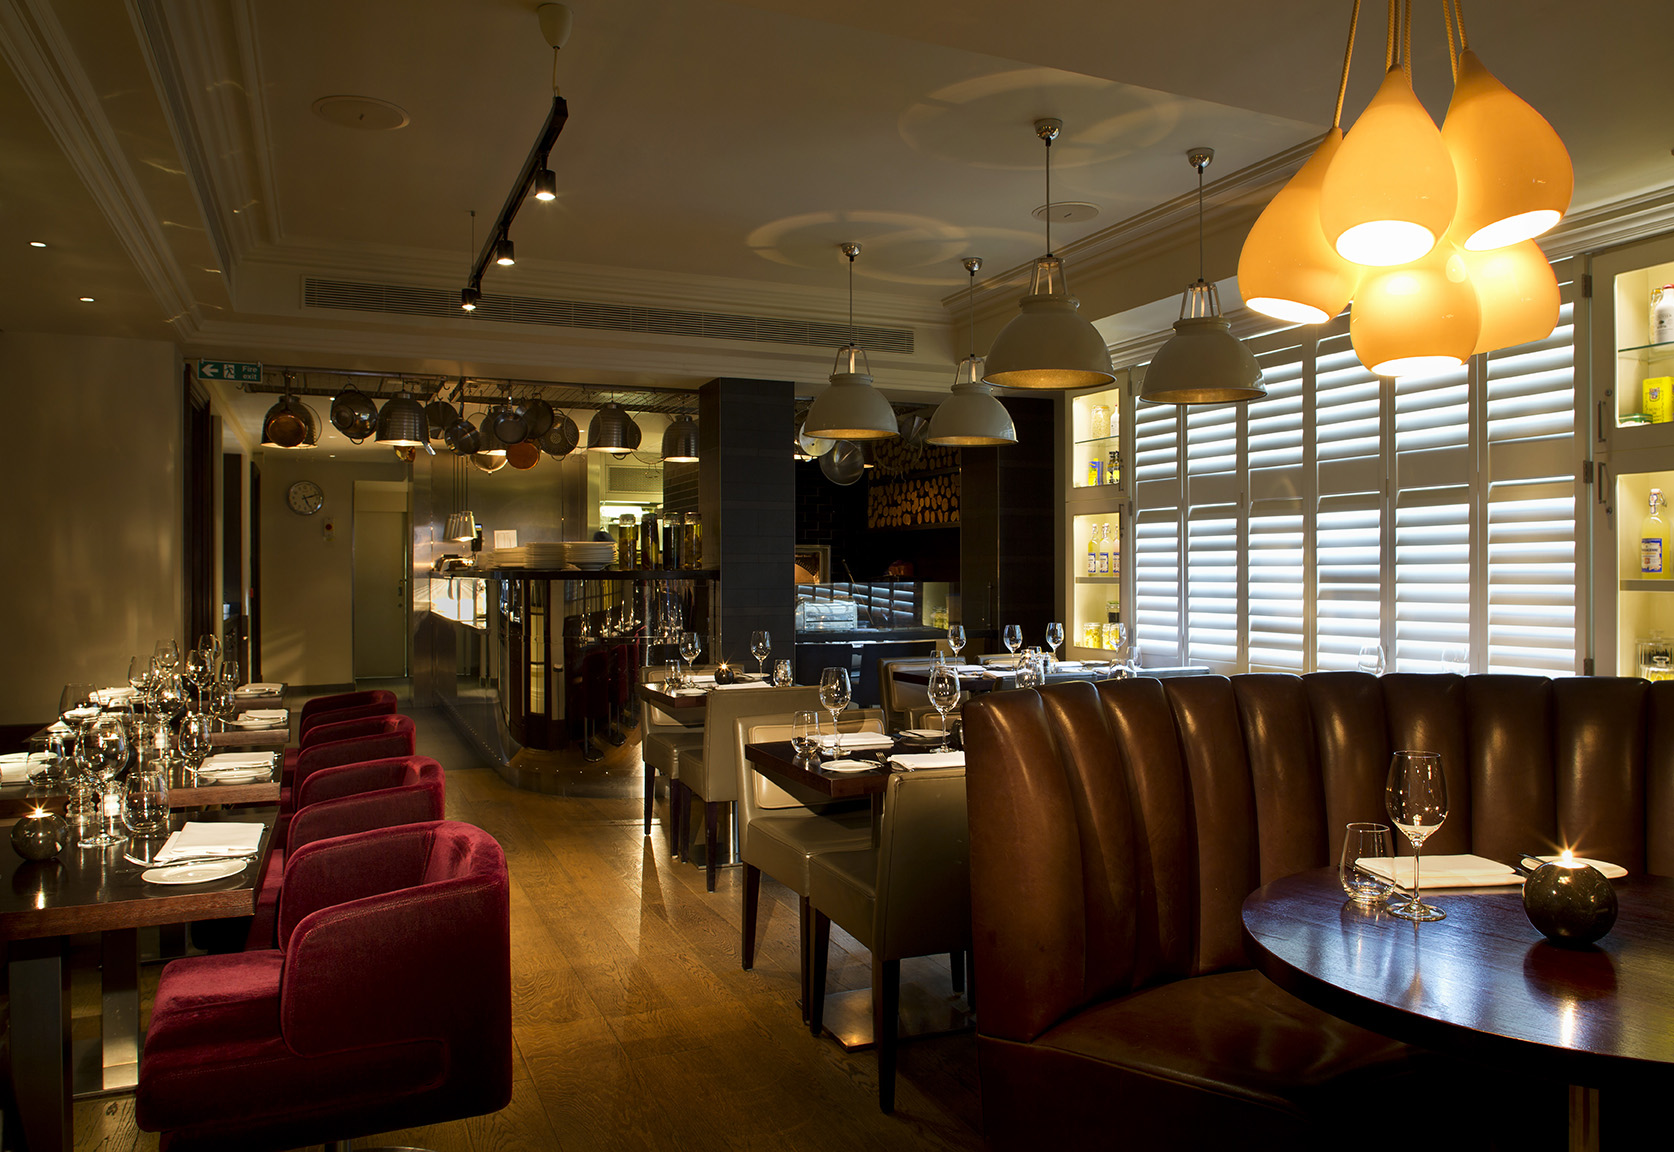 2. Hunter 486, The Arch London. Photography must be credited to The Arch London - Copy